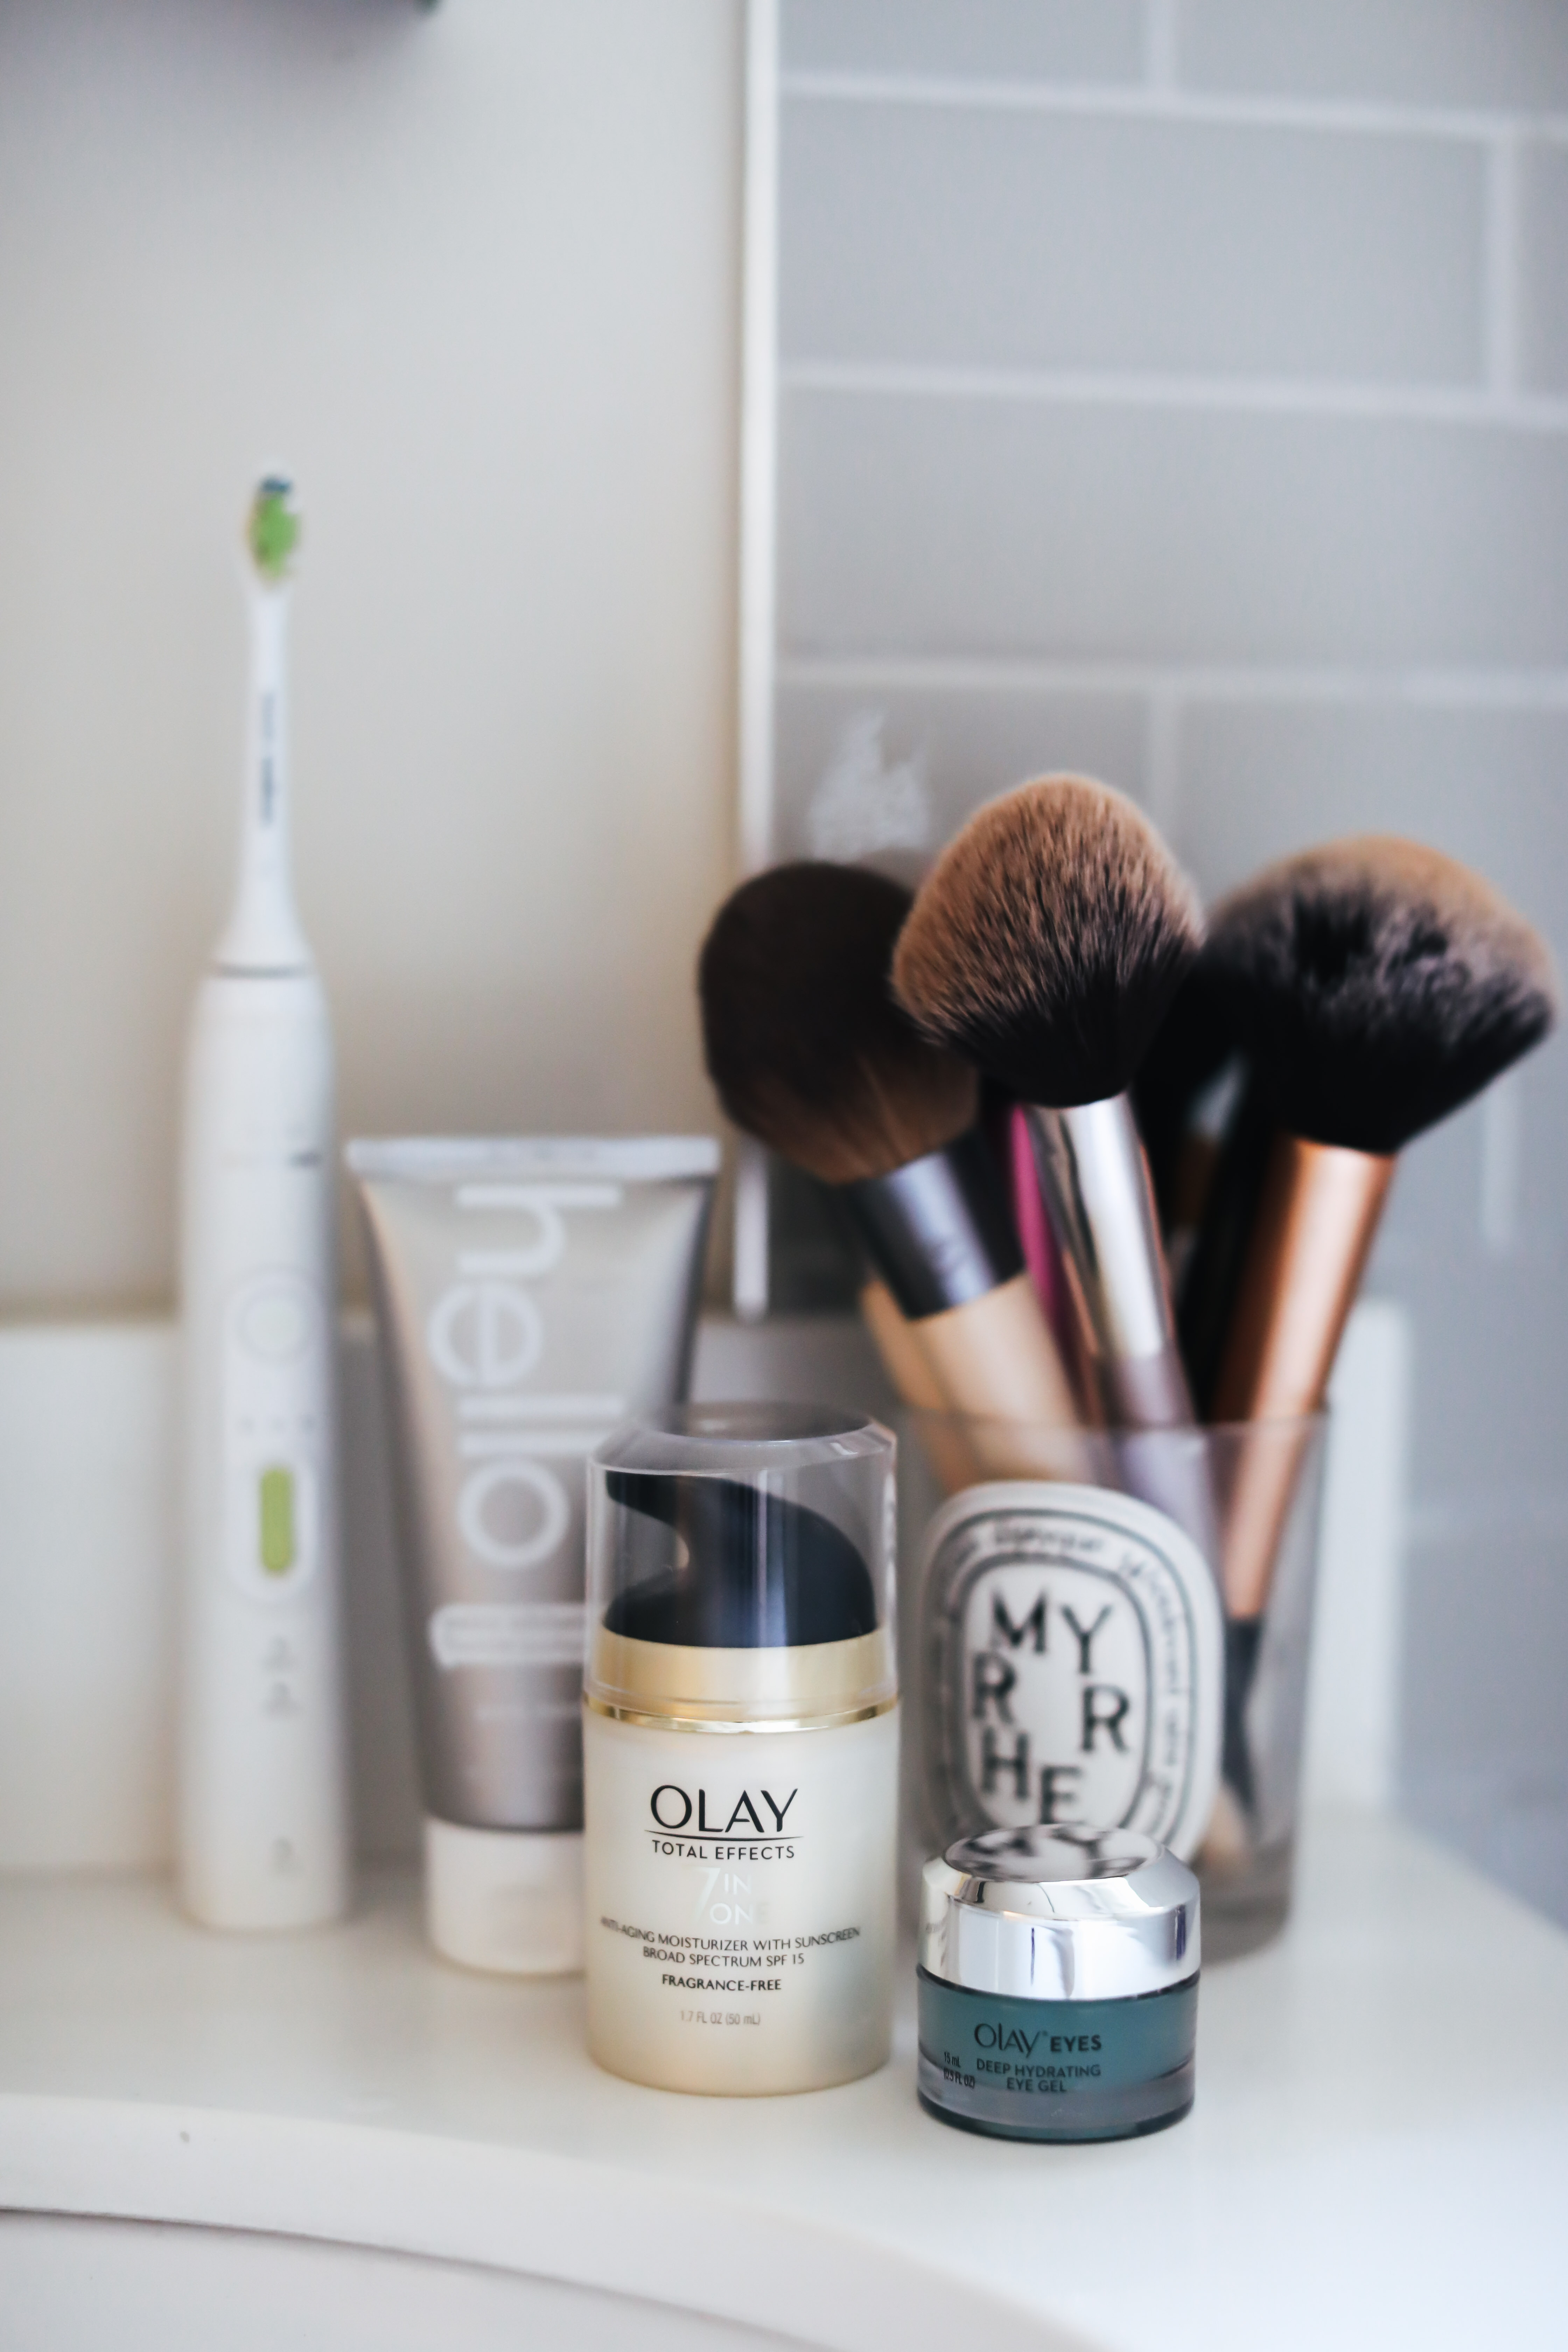 Challenge: Streamline Your Beauty Routine with OLAY #28Day Challenge.